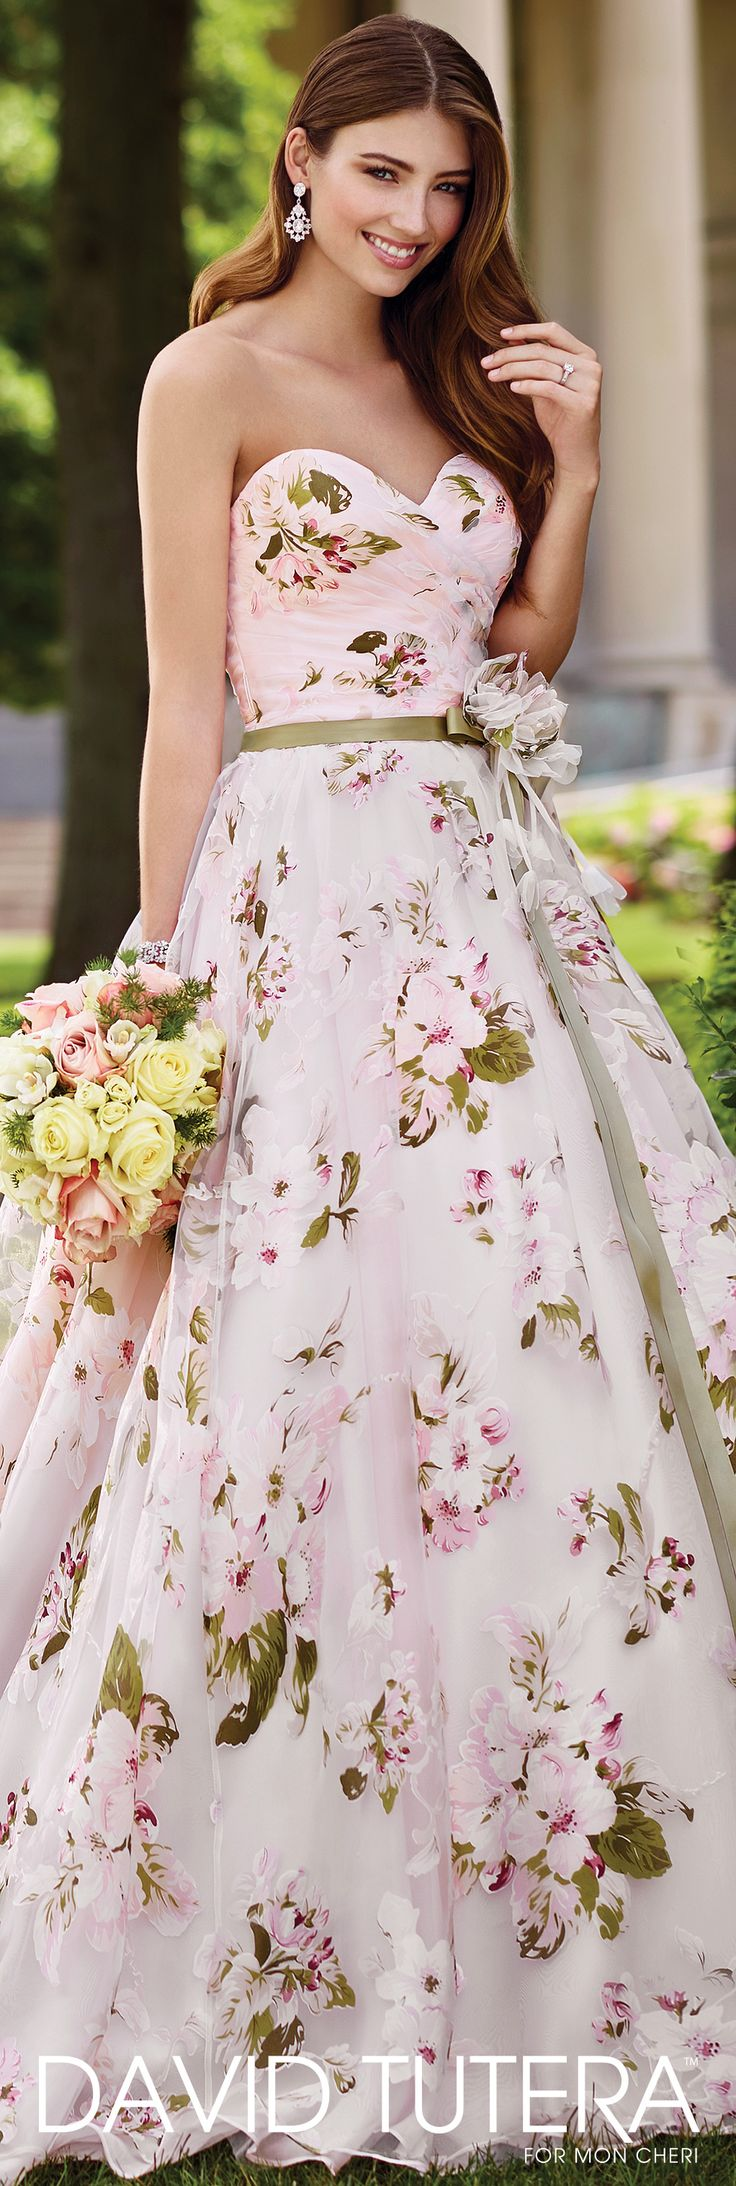 442 best images about wedding flowers on pinterest for Floral dresses for weddings